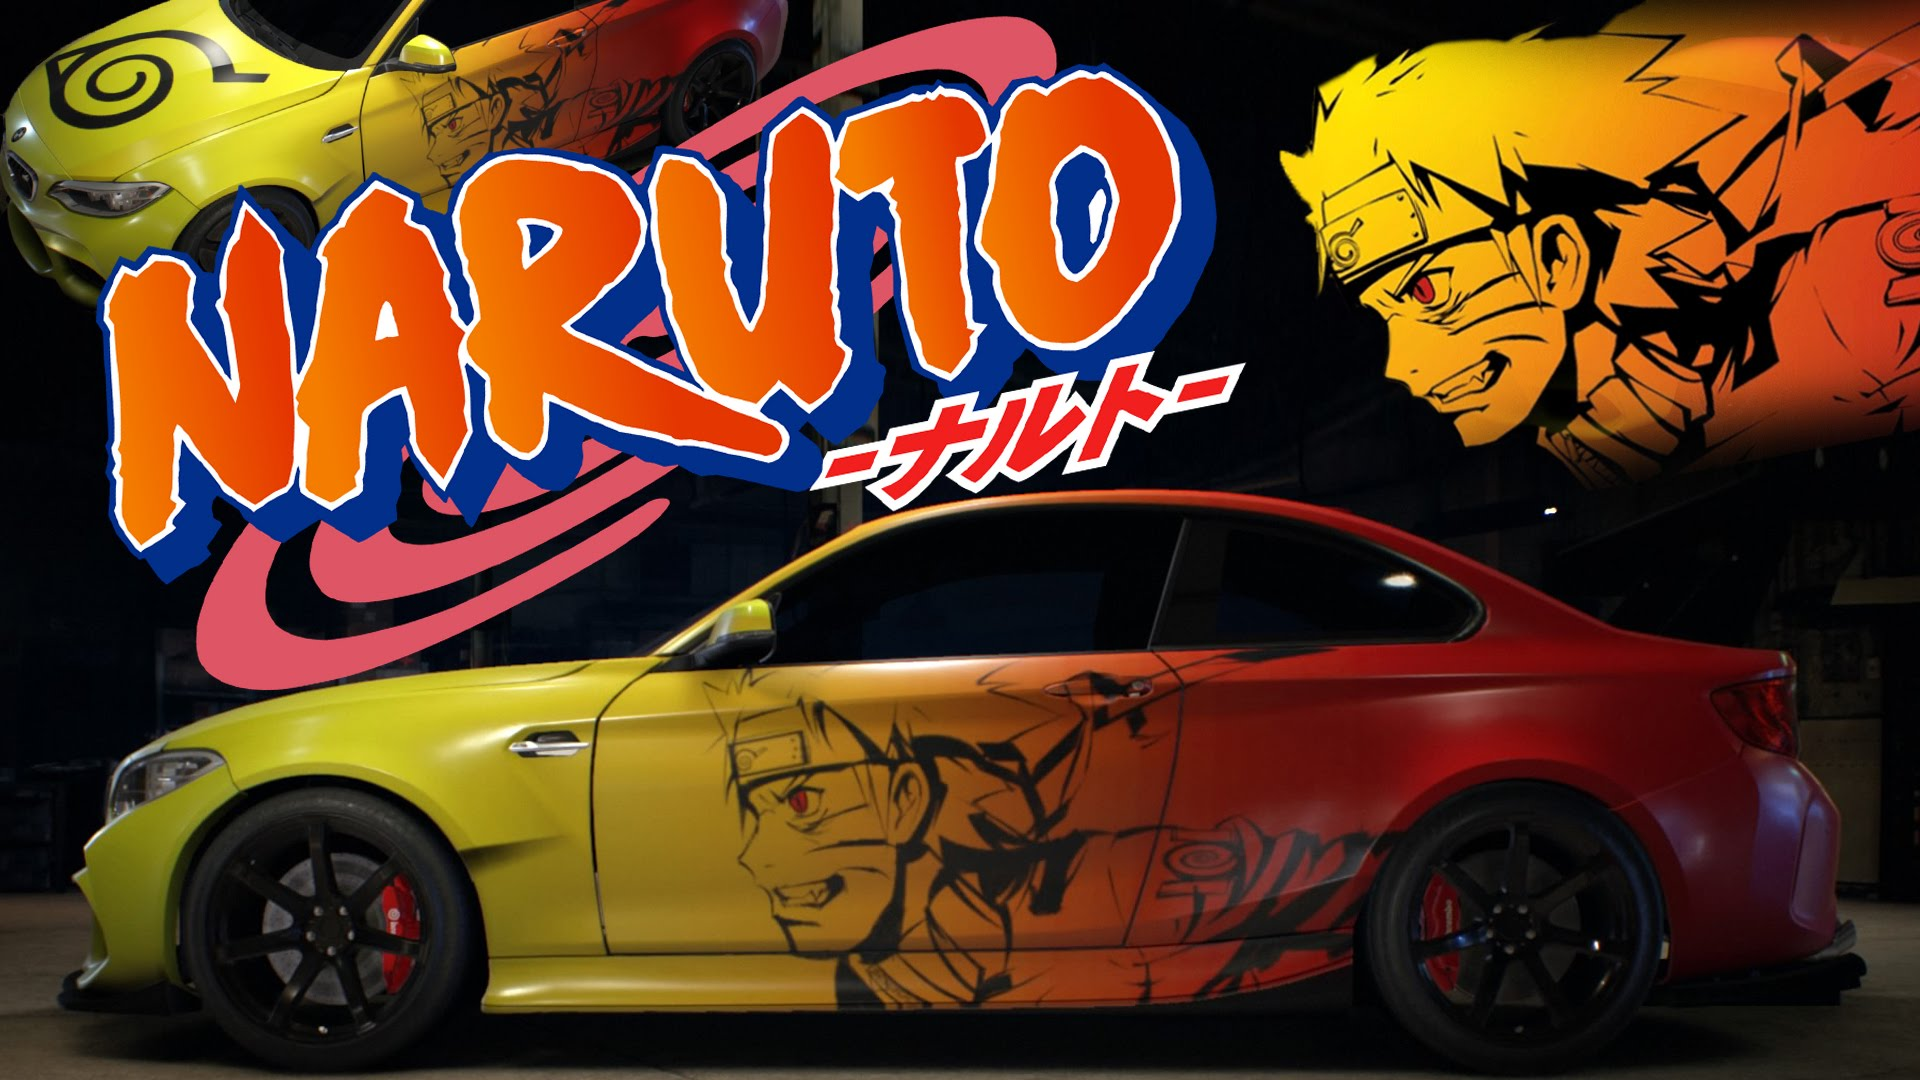 Easy way to decorate your car anime stickers car decals from japan anime sticker shop